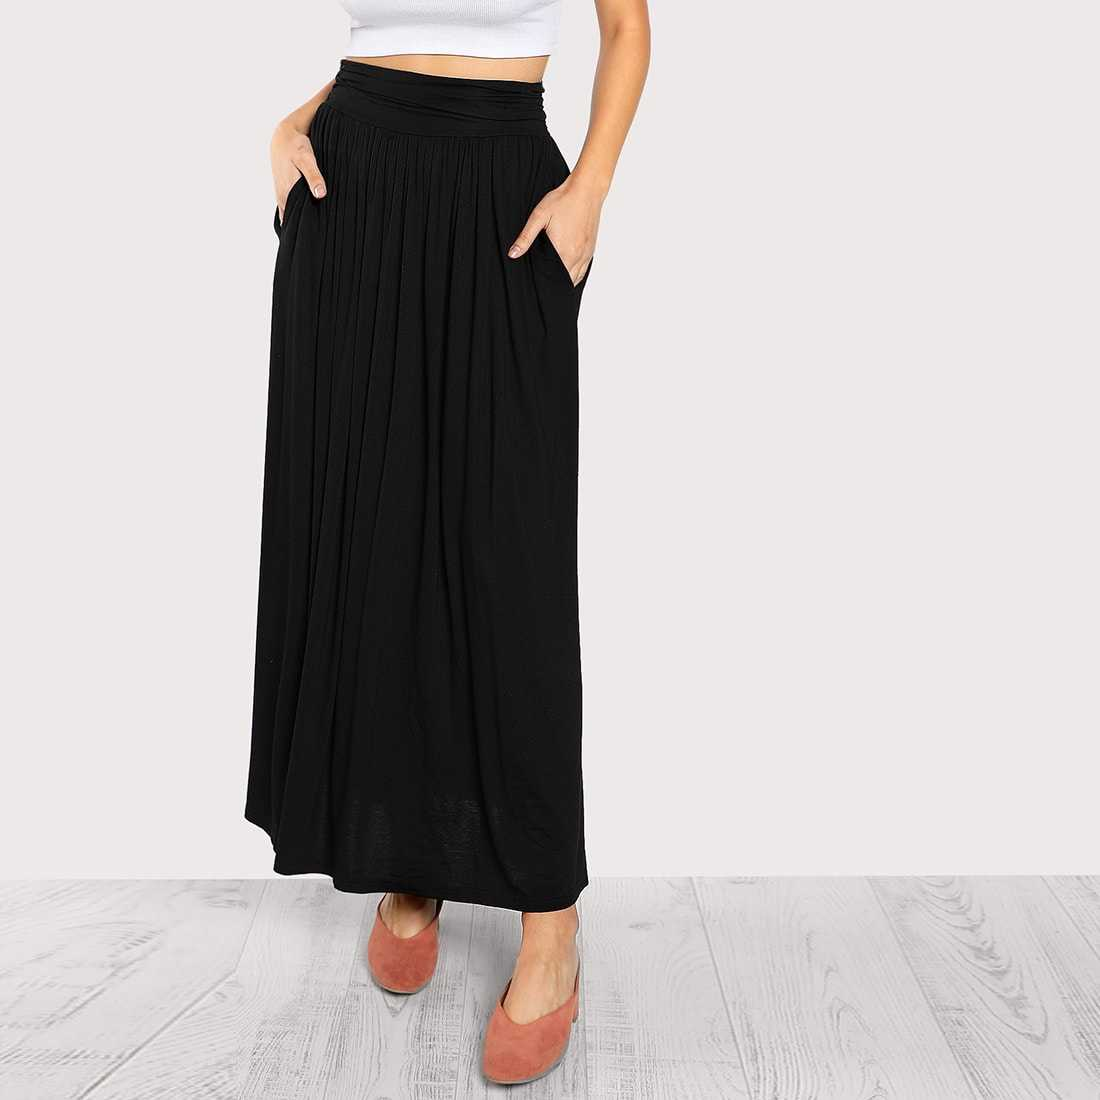 Ruched Waist Jersey Skirt in Black by ROMWE on GOOFASH